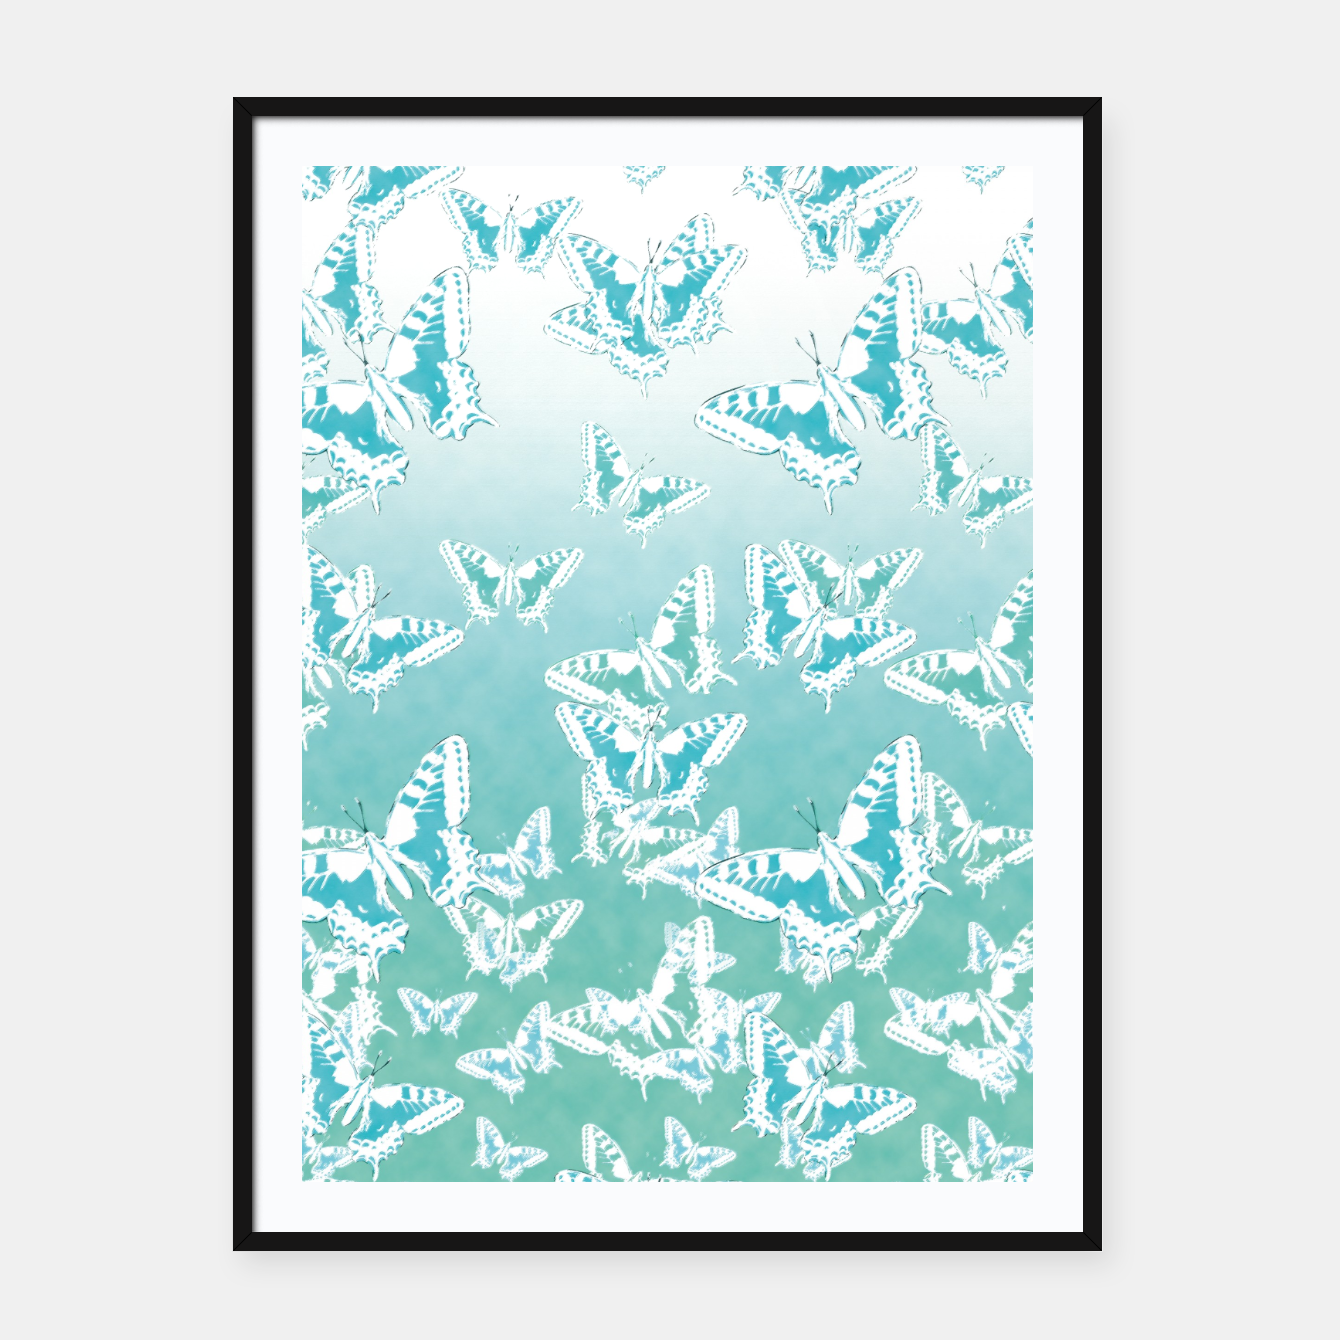 Foto blue butterflies in the sky Framed poster - Live Heroes